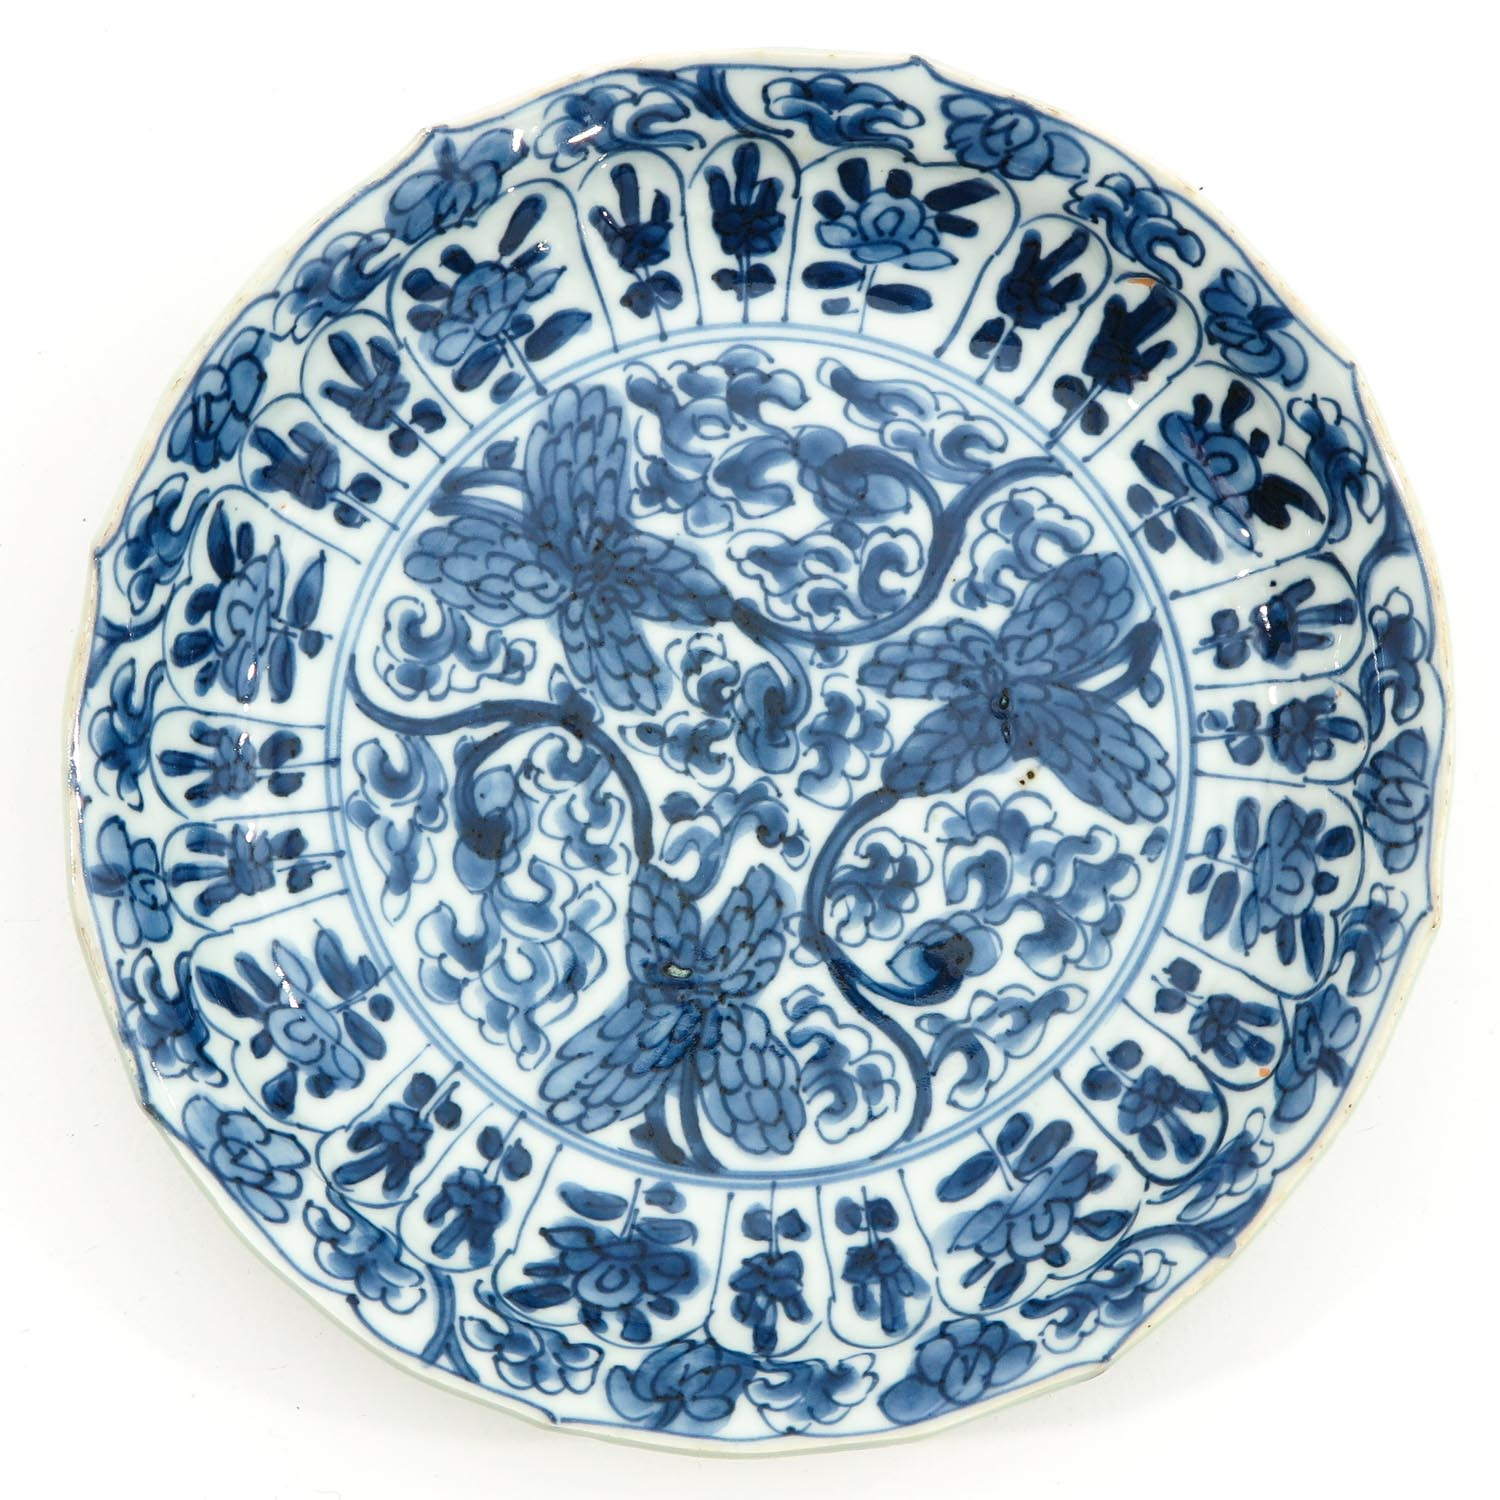 2 Blue and White Plates - Image 3 of 10